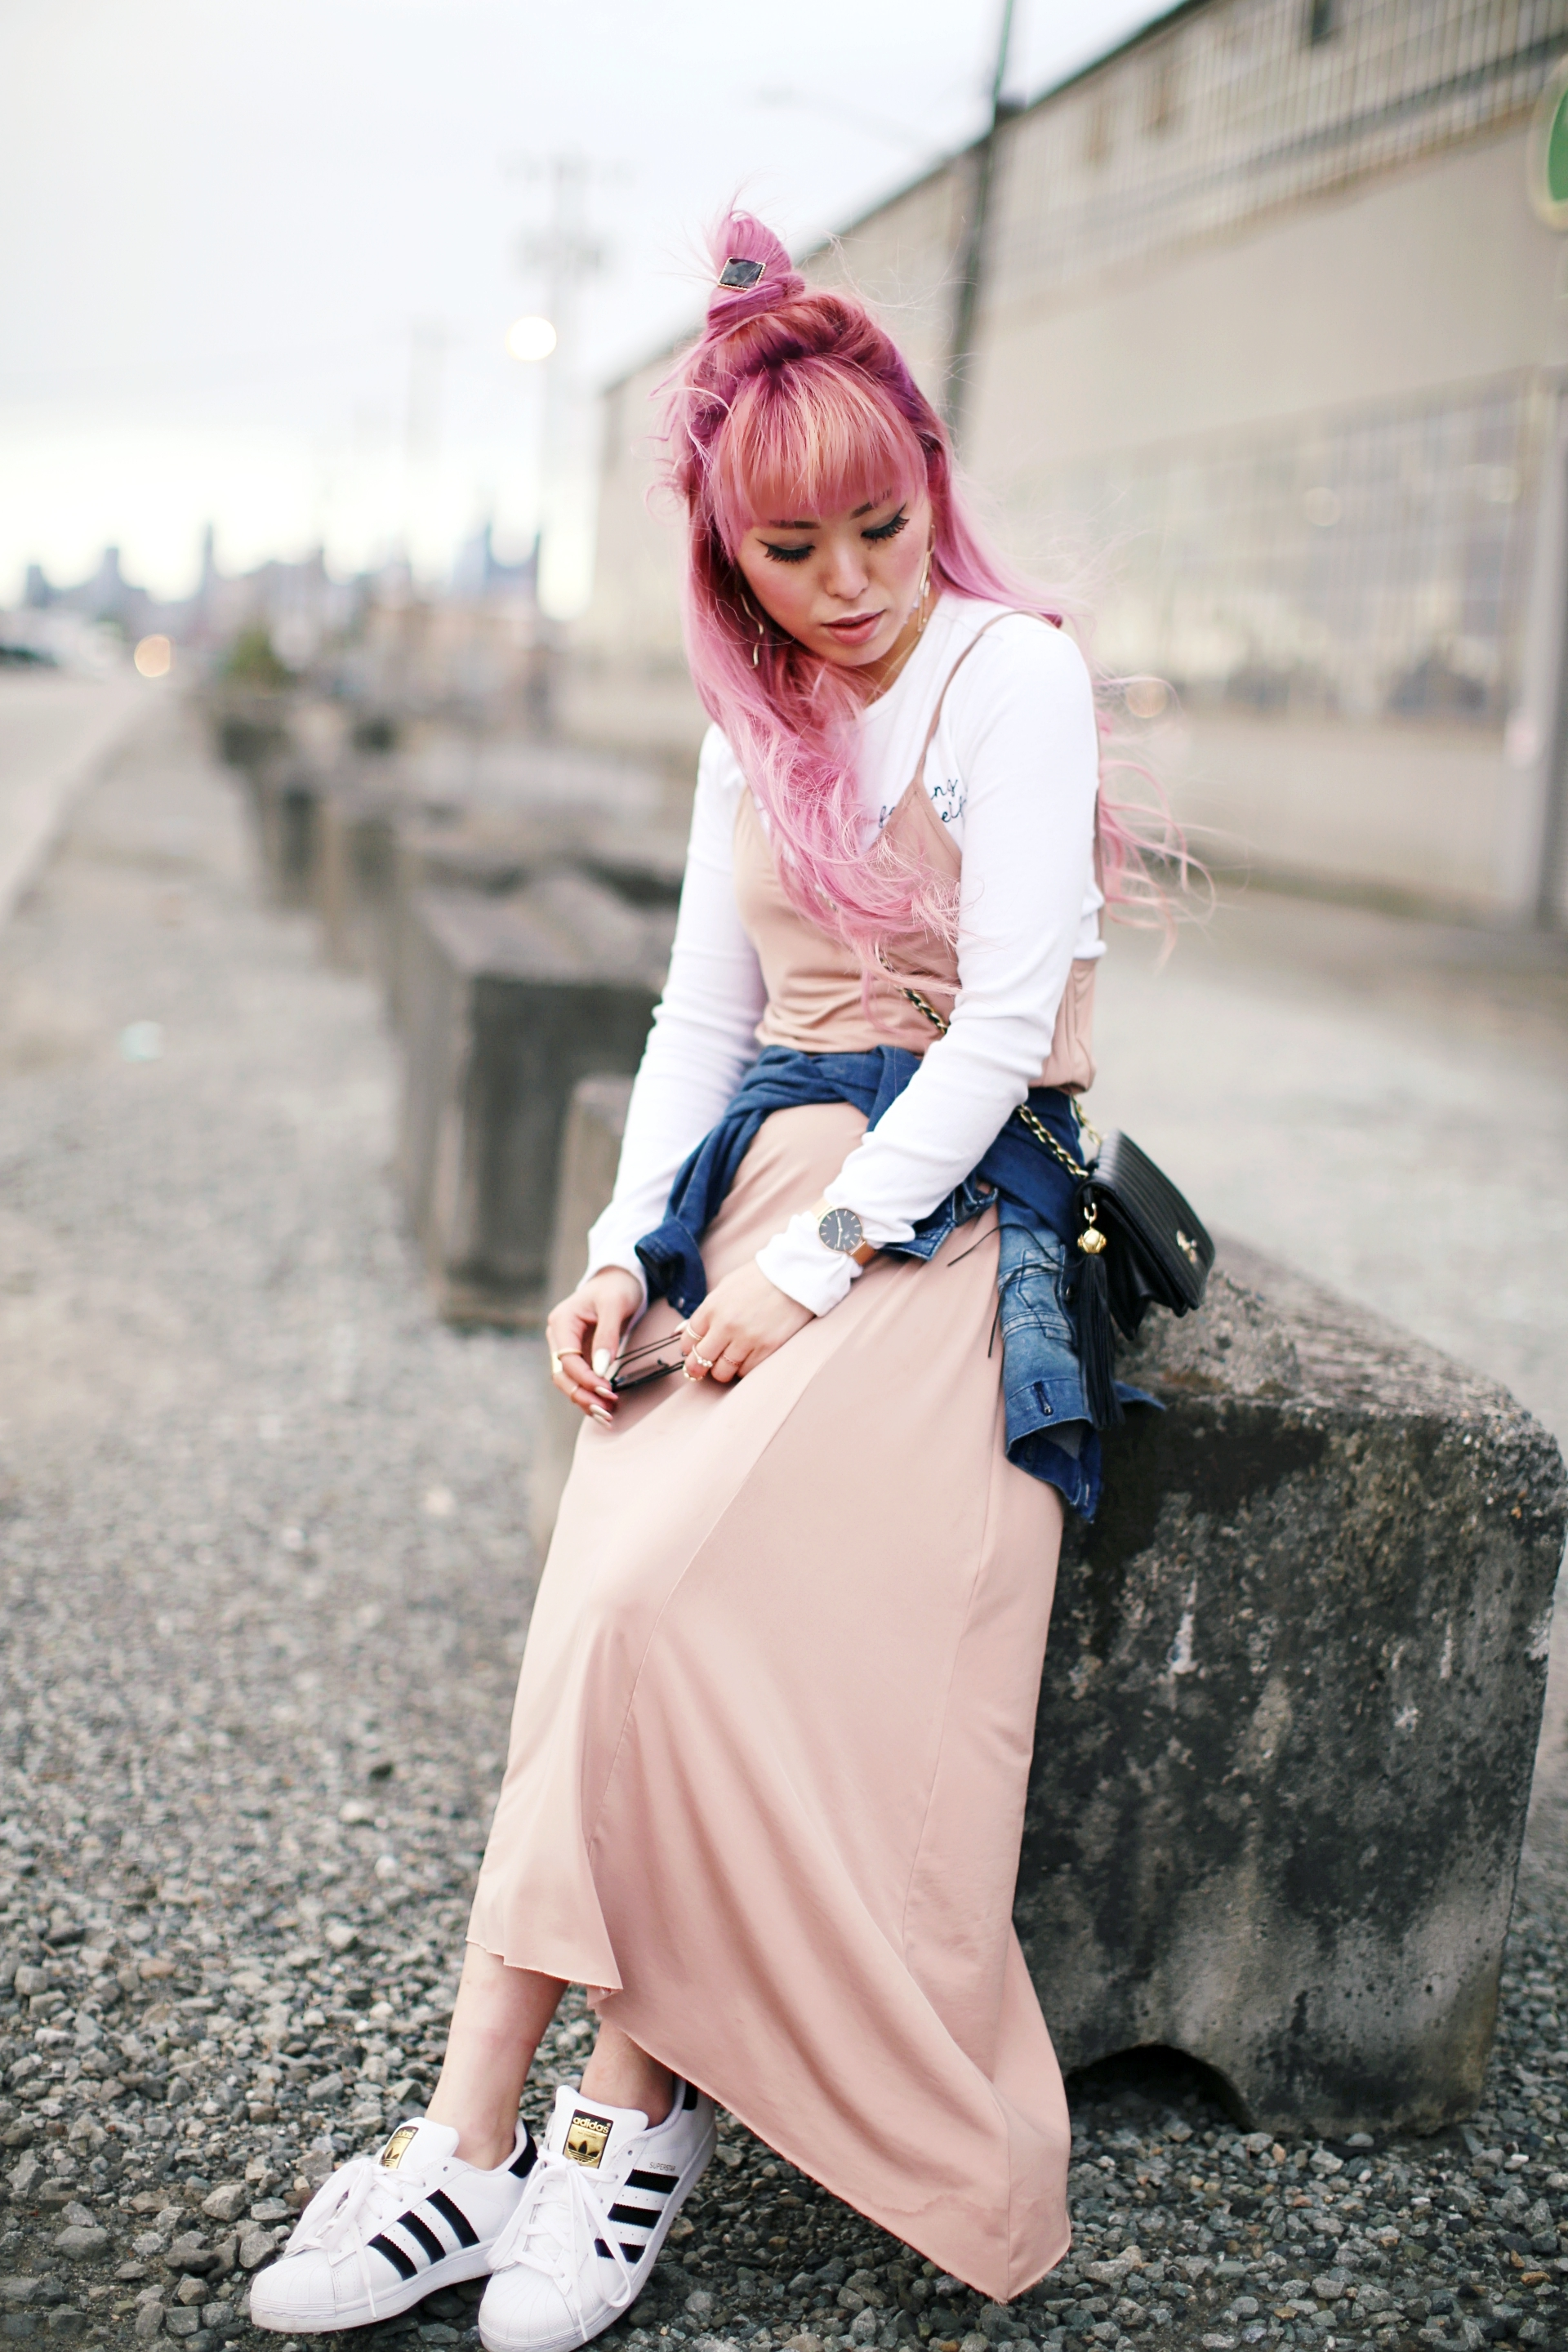 Forever 21 Long sleeve crop top_ZARA blush slip dress_Adidas Super Star sneakers_Vintage Chanel crossbodybag_Daniel Wellington Petite rose gold watch_Guess denim jacket_Aika's Love Closet_Seattle Fashion style blogger_Japanese_pink hair_Topknot hair